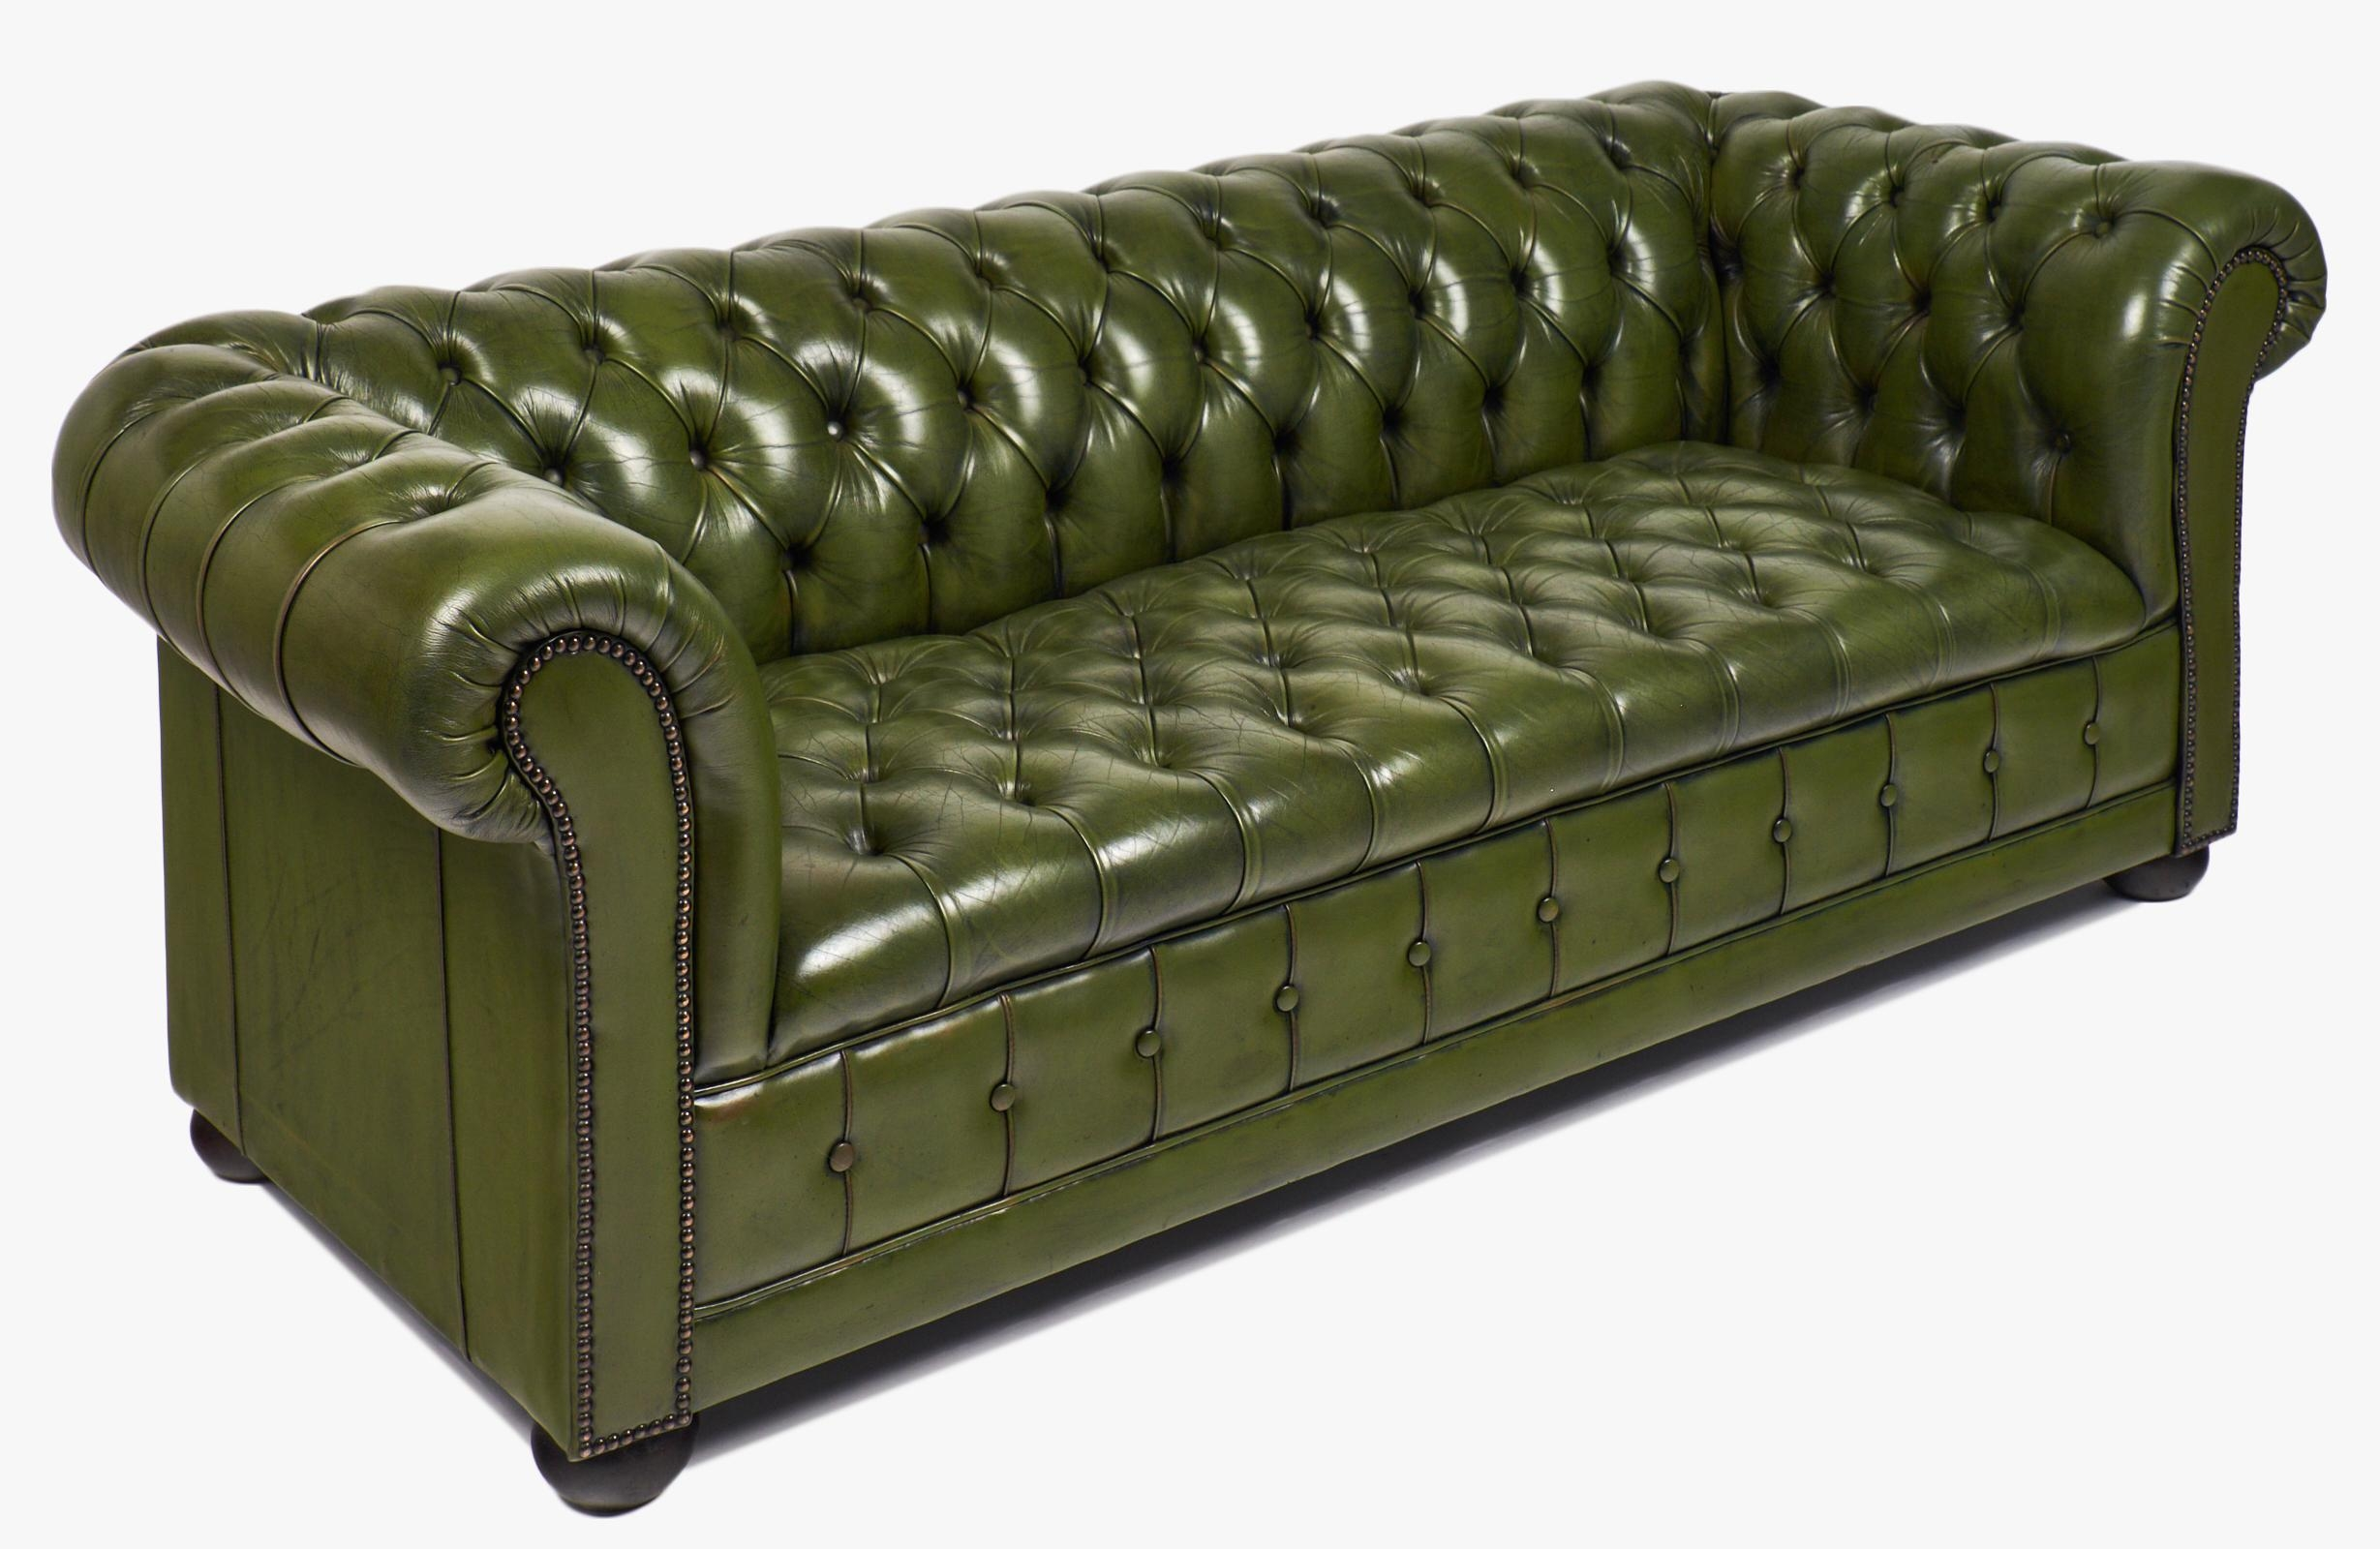 Vintage Green Leather Chesterfield Sofa – Jean Marc Fray Throughout Vintage Chesterfield Sofas (View 9 of 20)